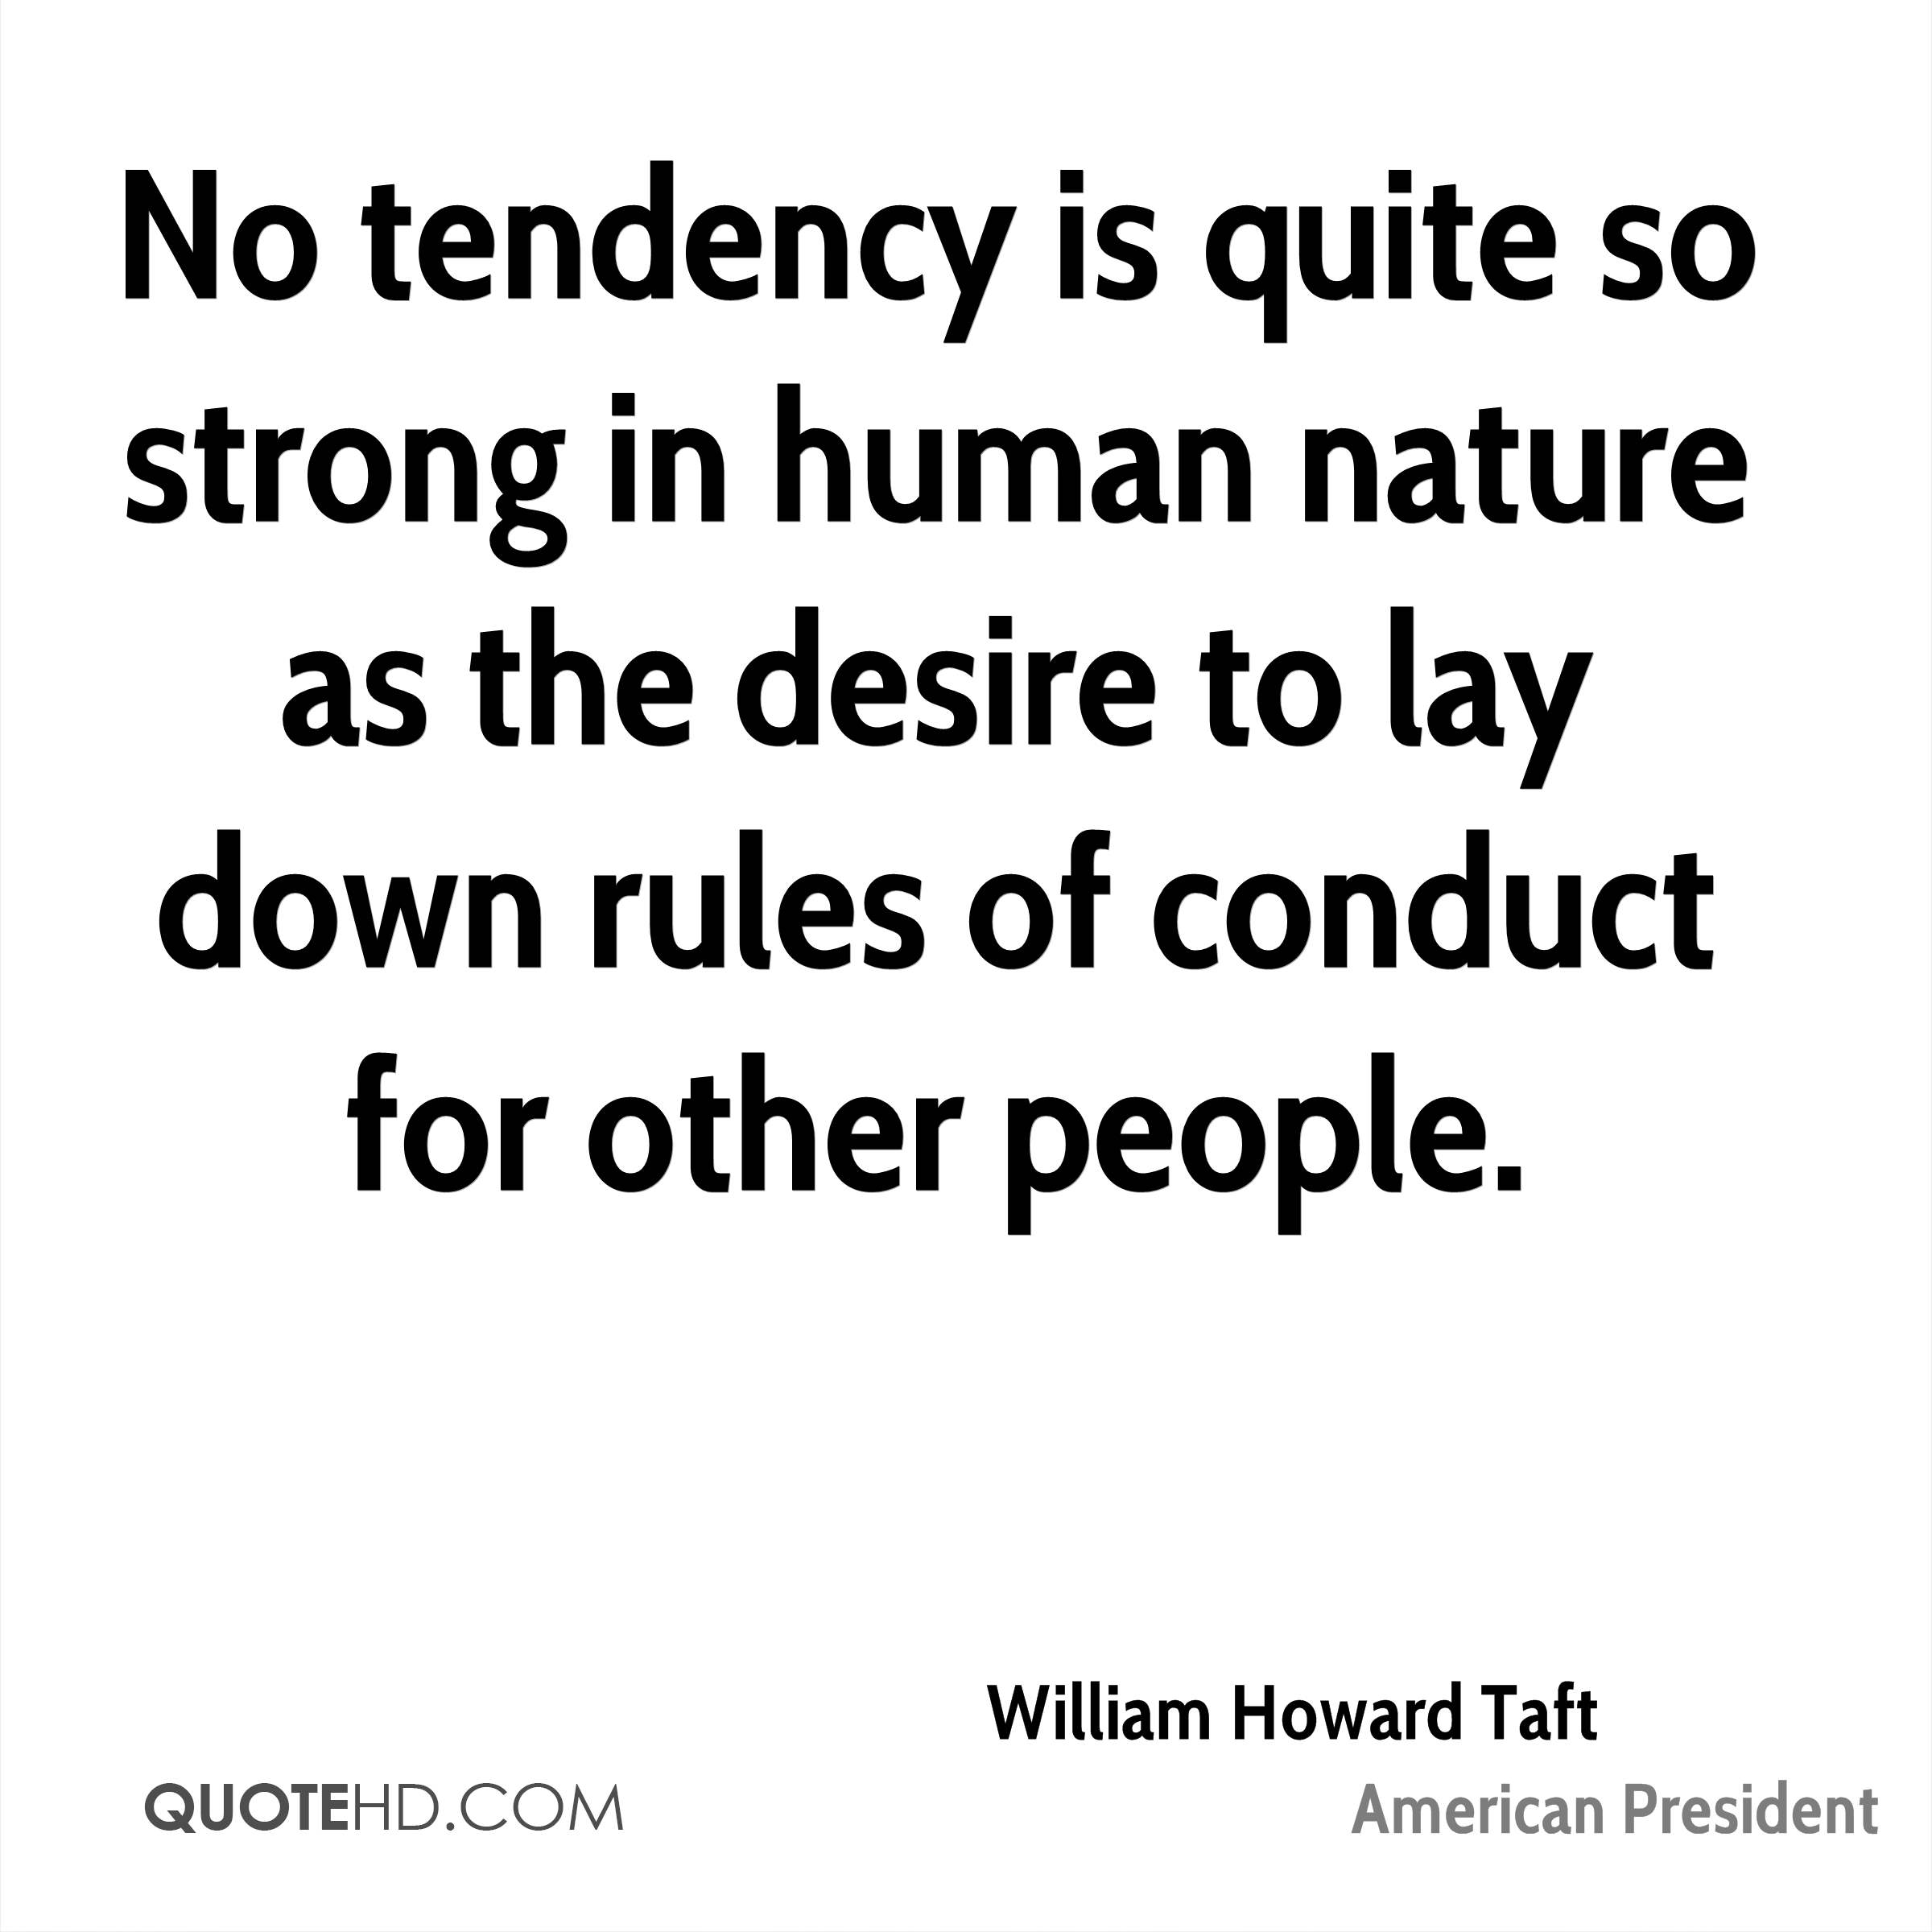 No tendency is quite so strong in human nature as the desire to lay down rules of conduct for other people.